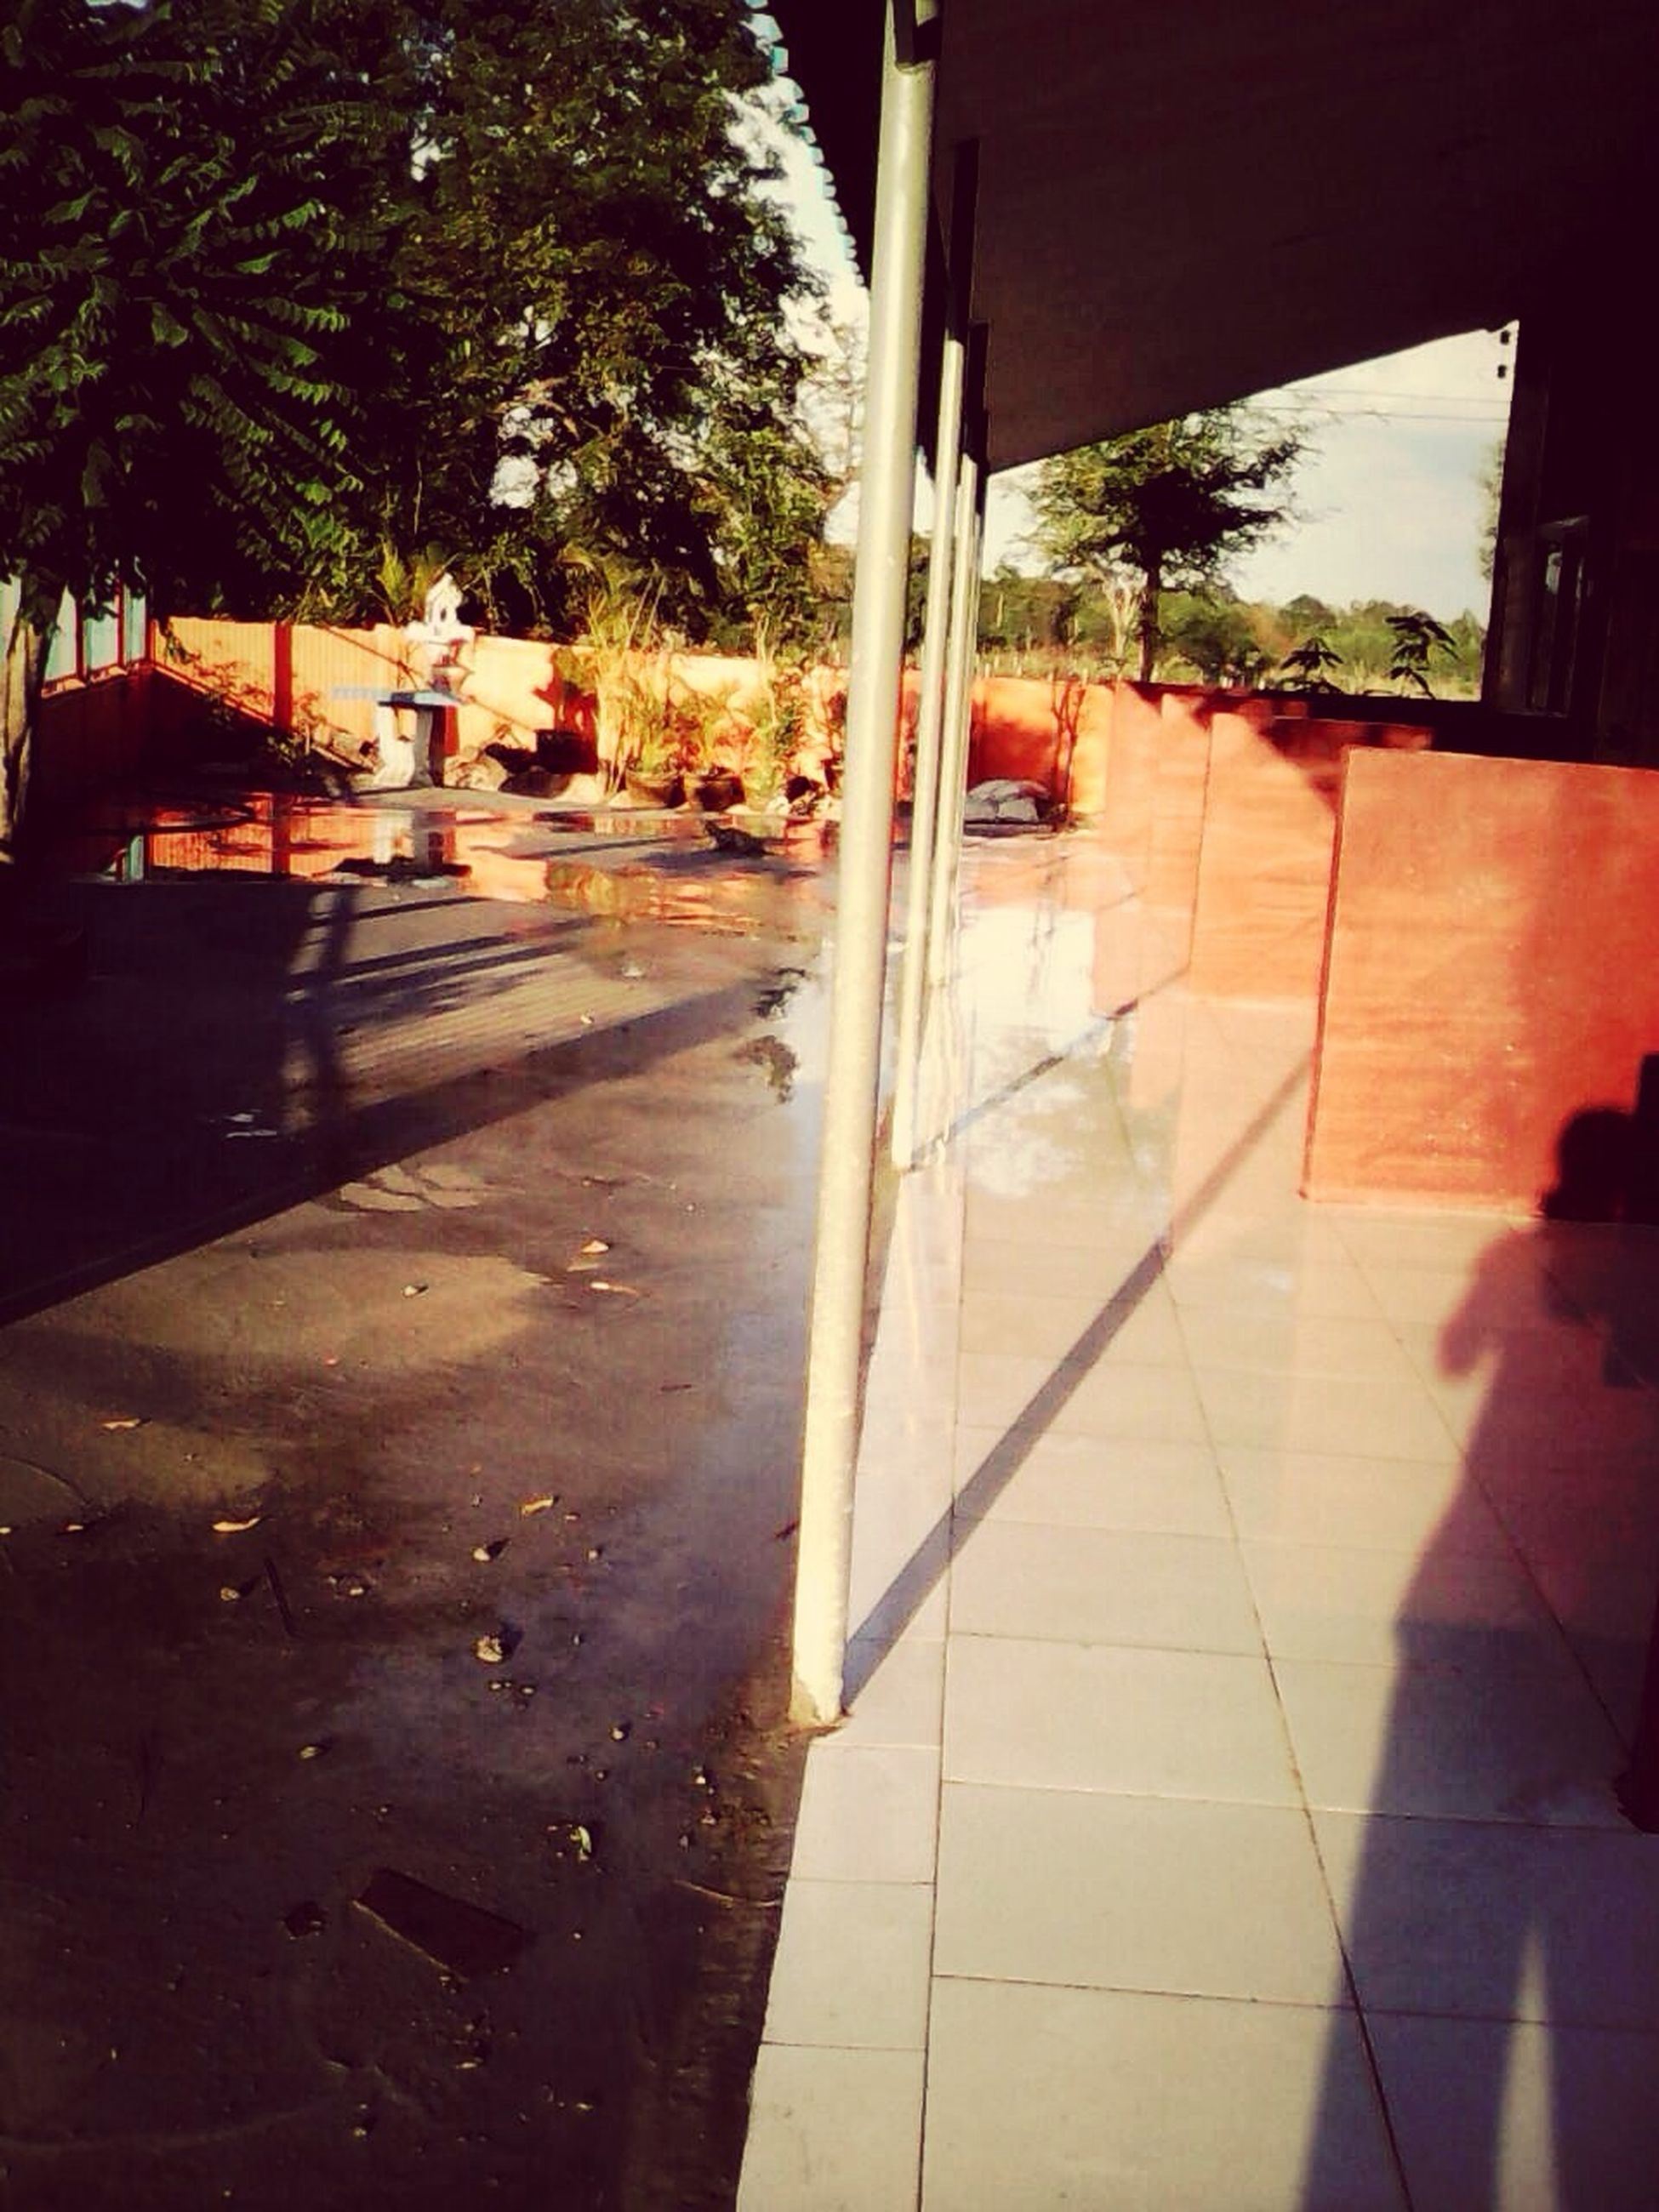 tree, shadow, sunlight, street, built structure, sidewalk, architecture, water, building exterior, footpath, day, incidental people, empty, road, outdoors, reflection, no people, absence, beach, city